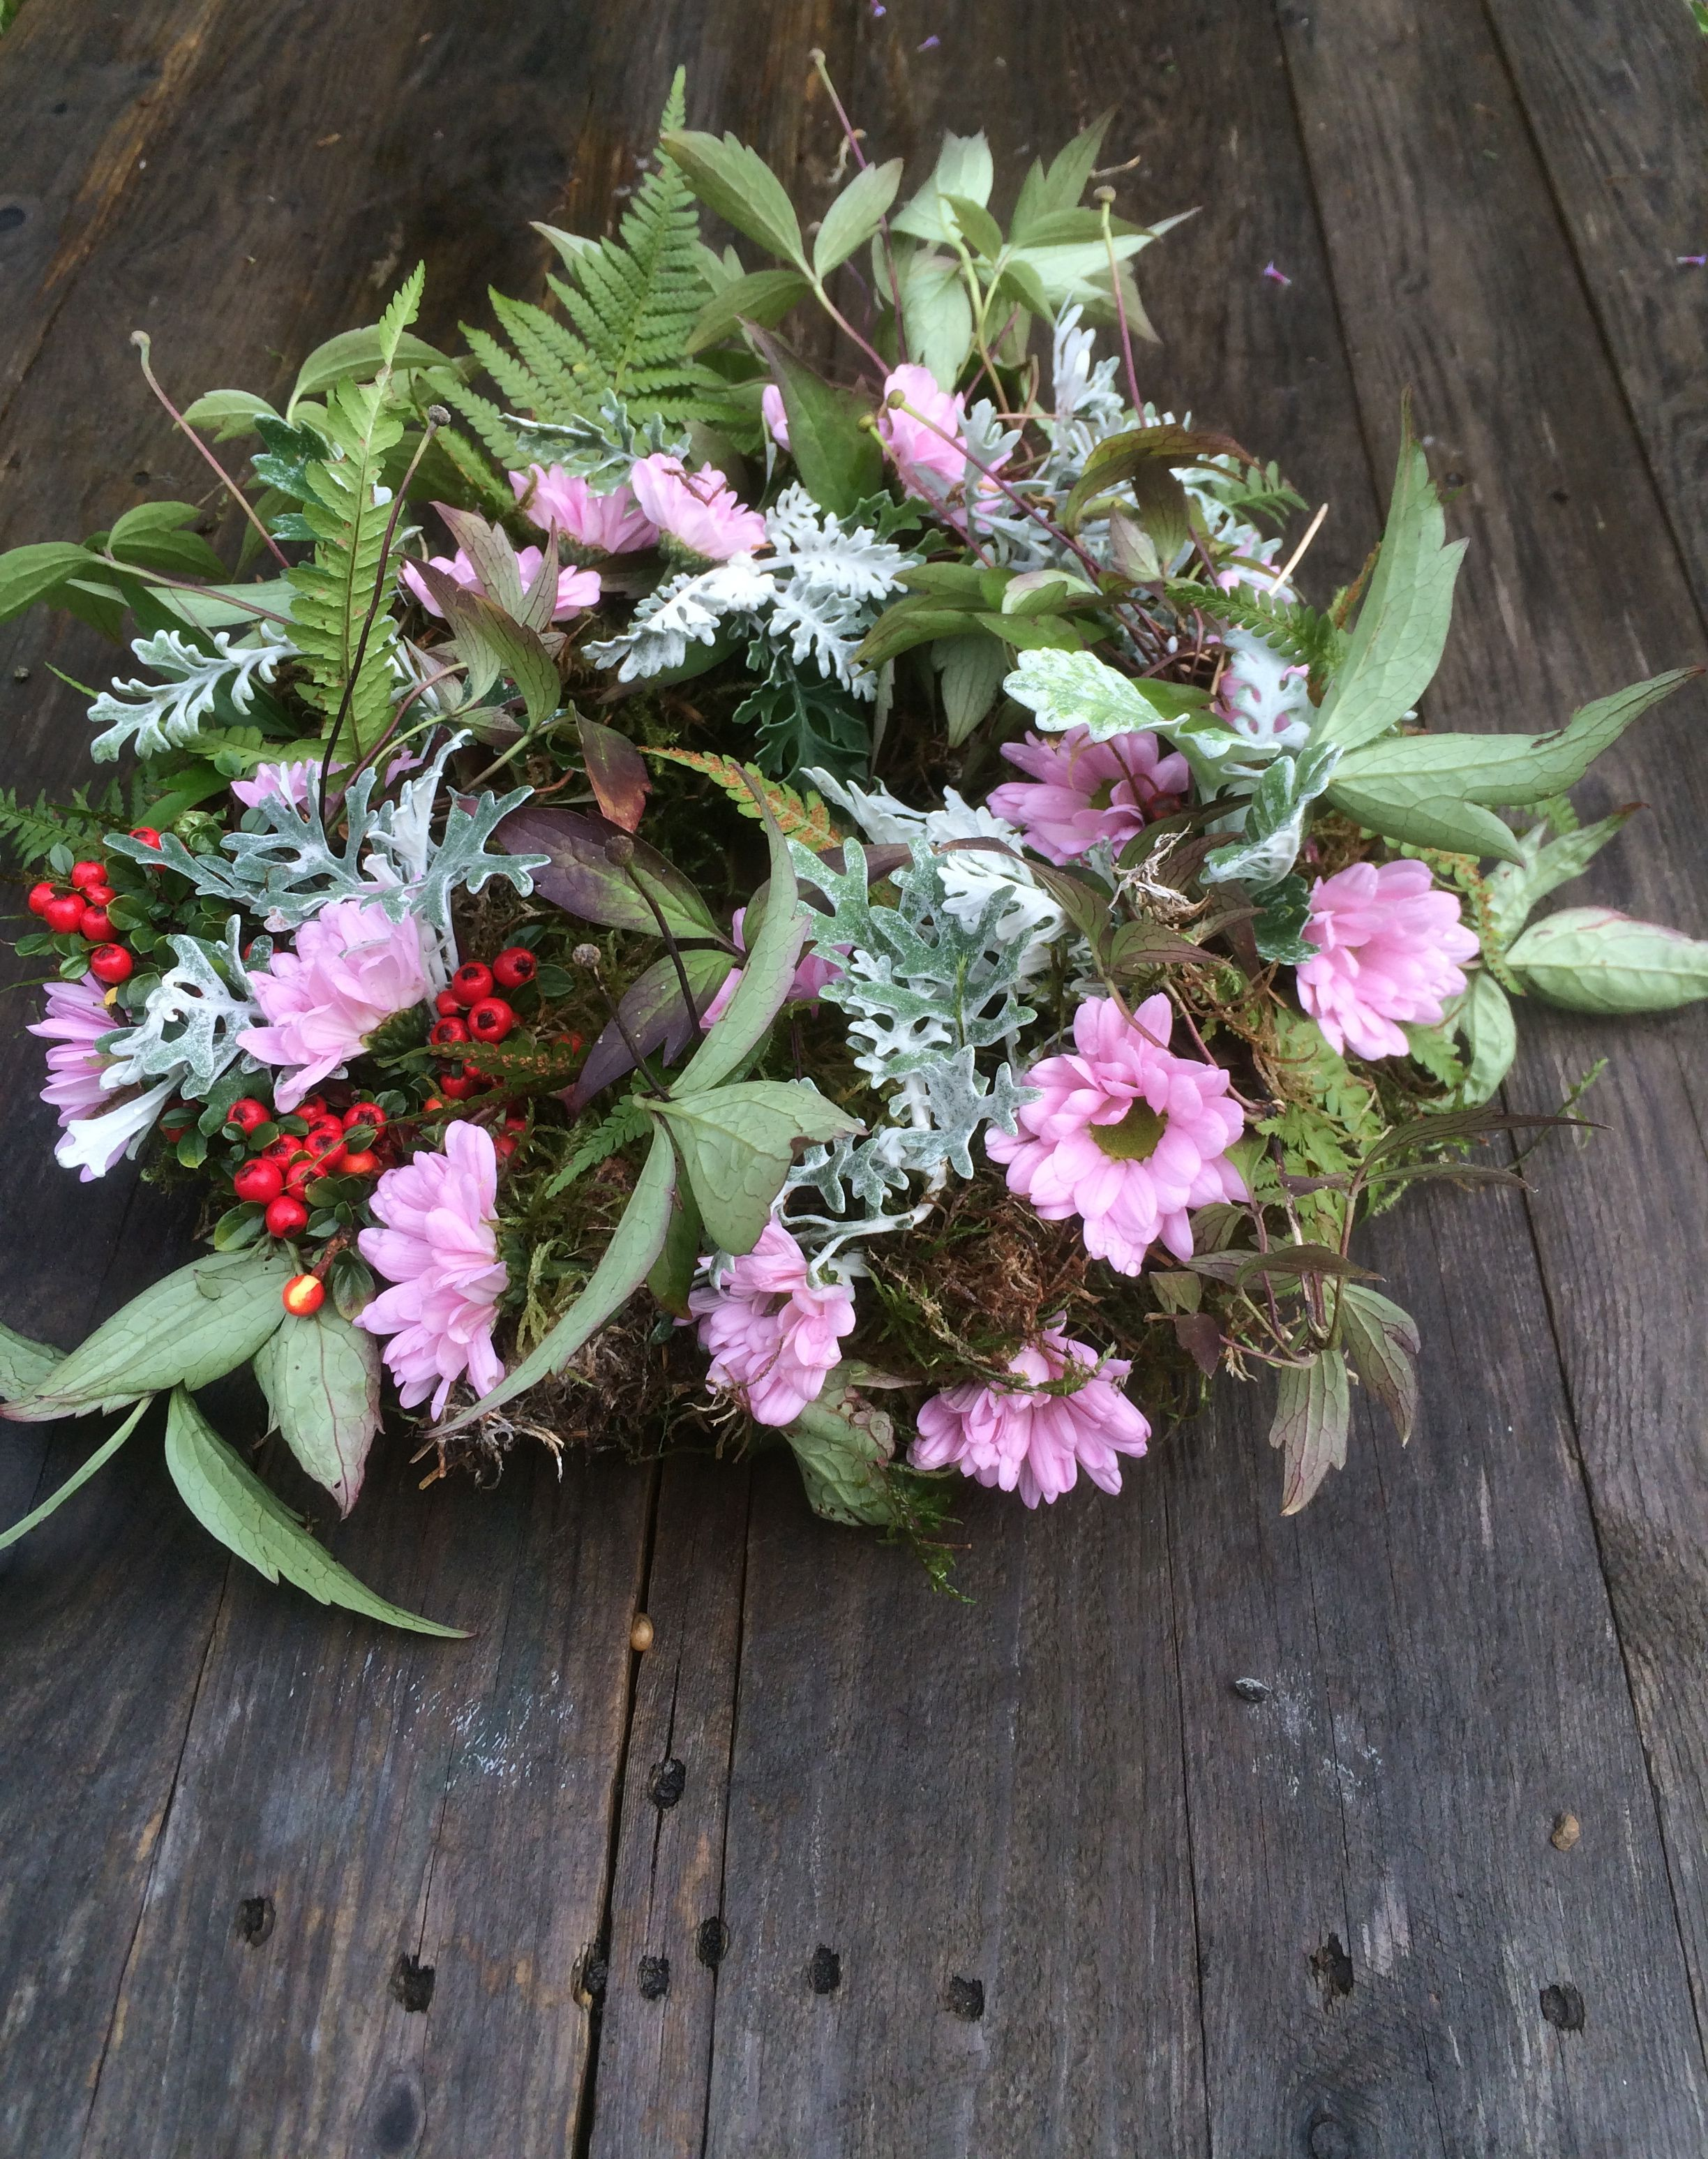 Autumn funeral wreath mossed wire wreath with clematis vine ferns autumn funeral wreath mossed wire wreath with clematis vine ferns cotoneaster berries and small pale pink chrysanthemums tuckshop flowers birmingham izmirmasajfo